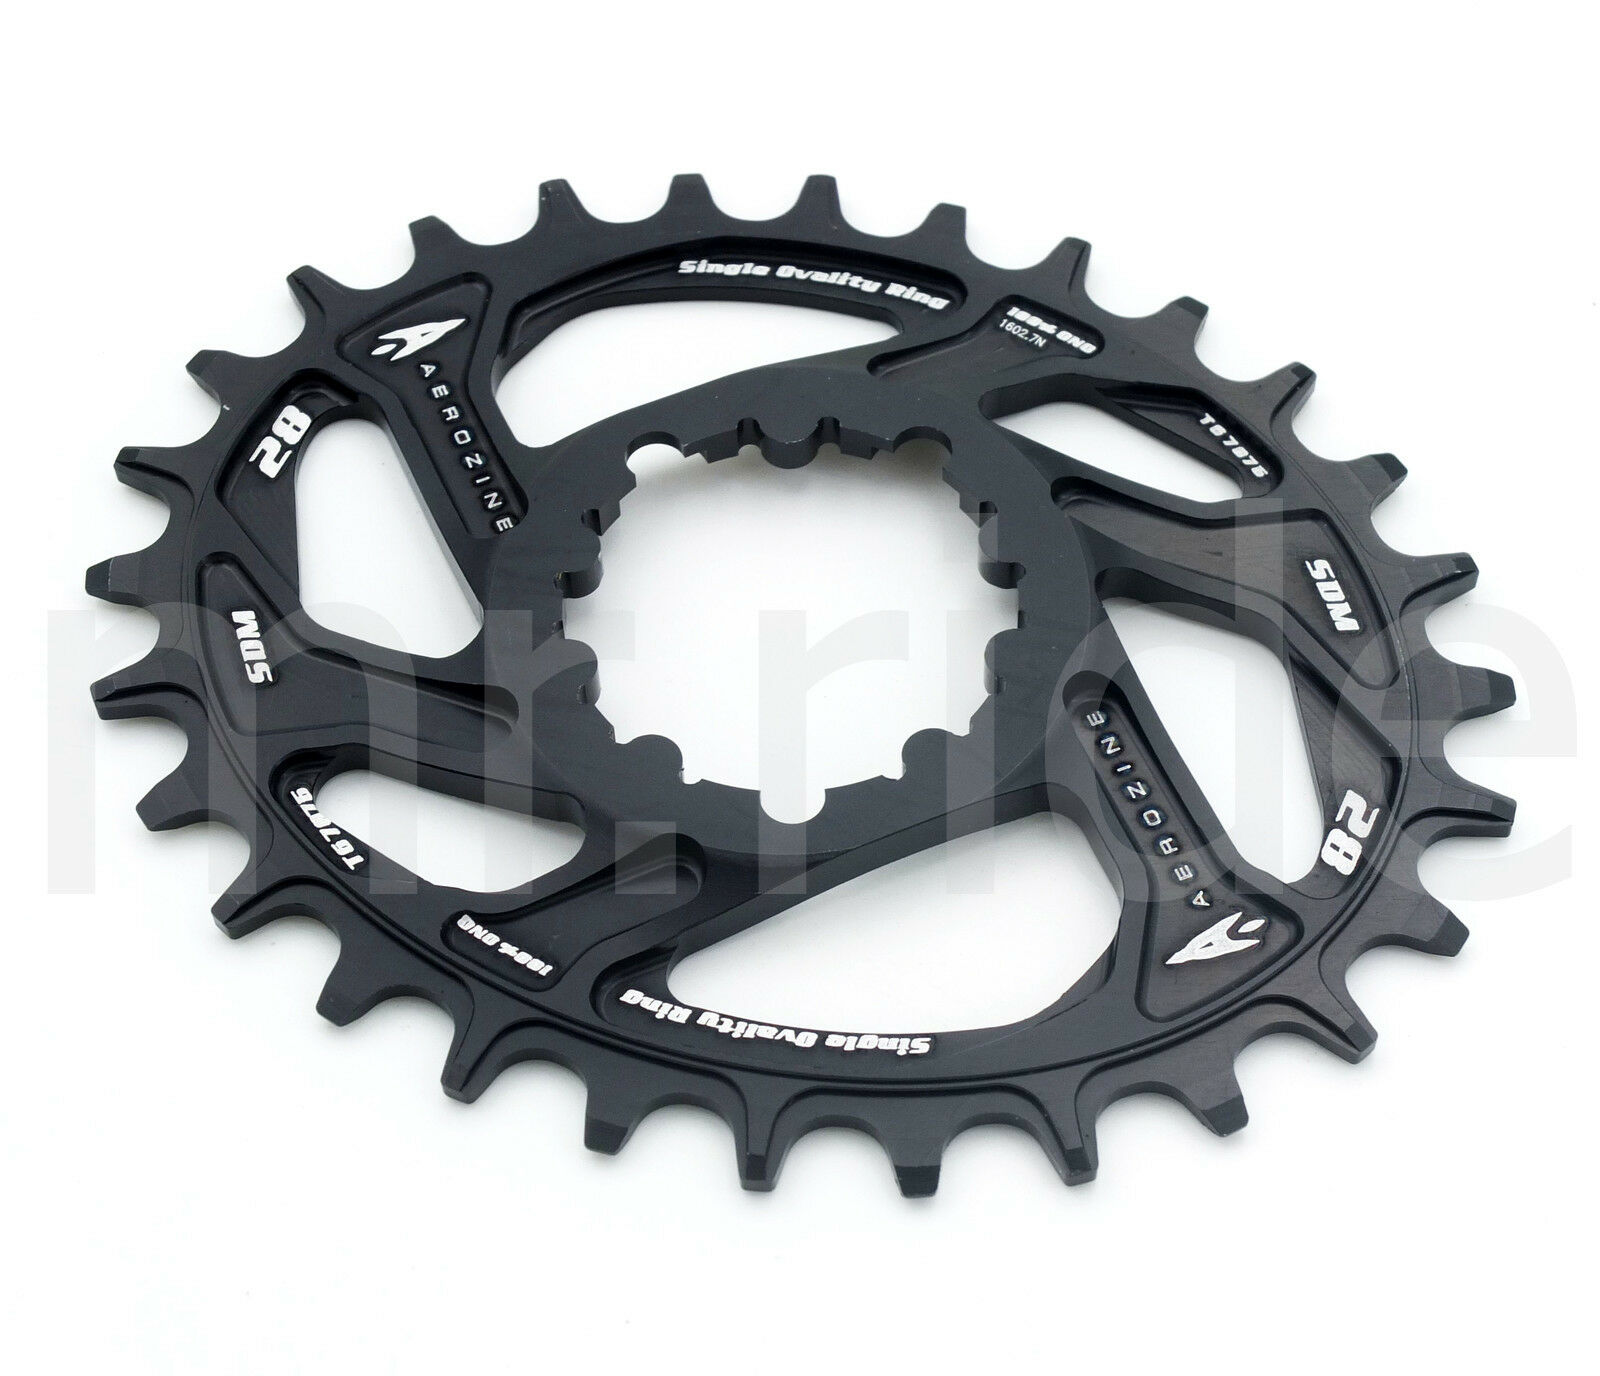 Aerozine Oval Mountain Bike 28T Single Chainring Direct Mount for Sram 11 Speed